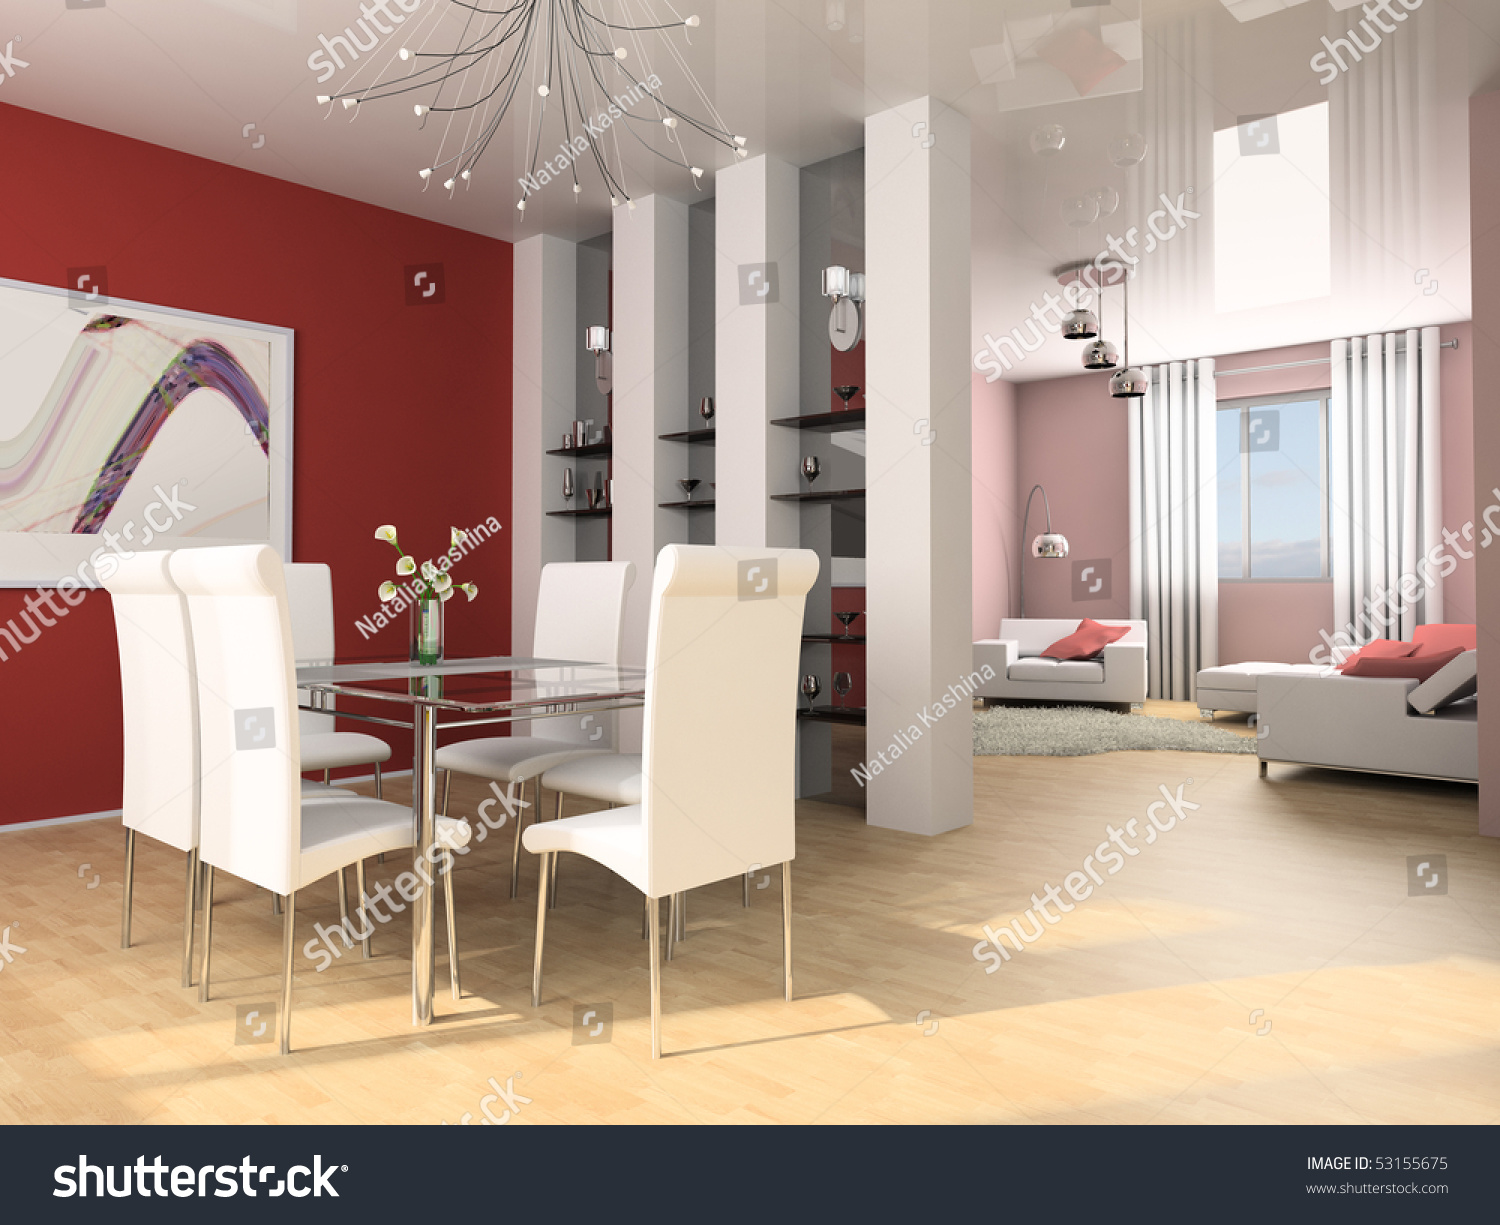 Dining table against a wall 3d image stock photo 53155675 - Dining table against the wall ...